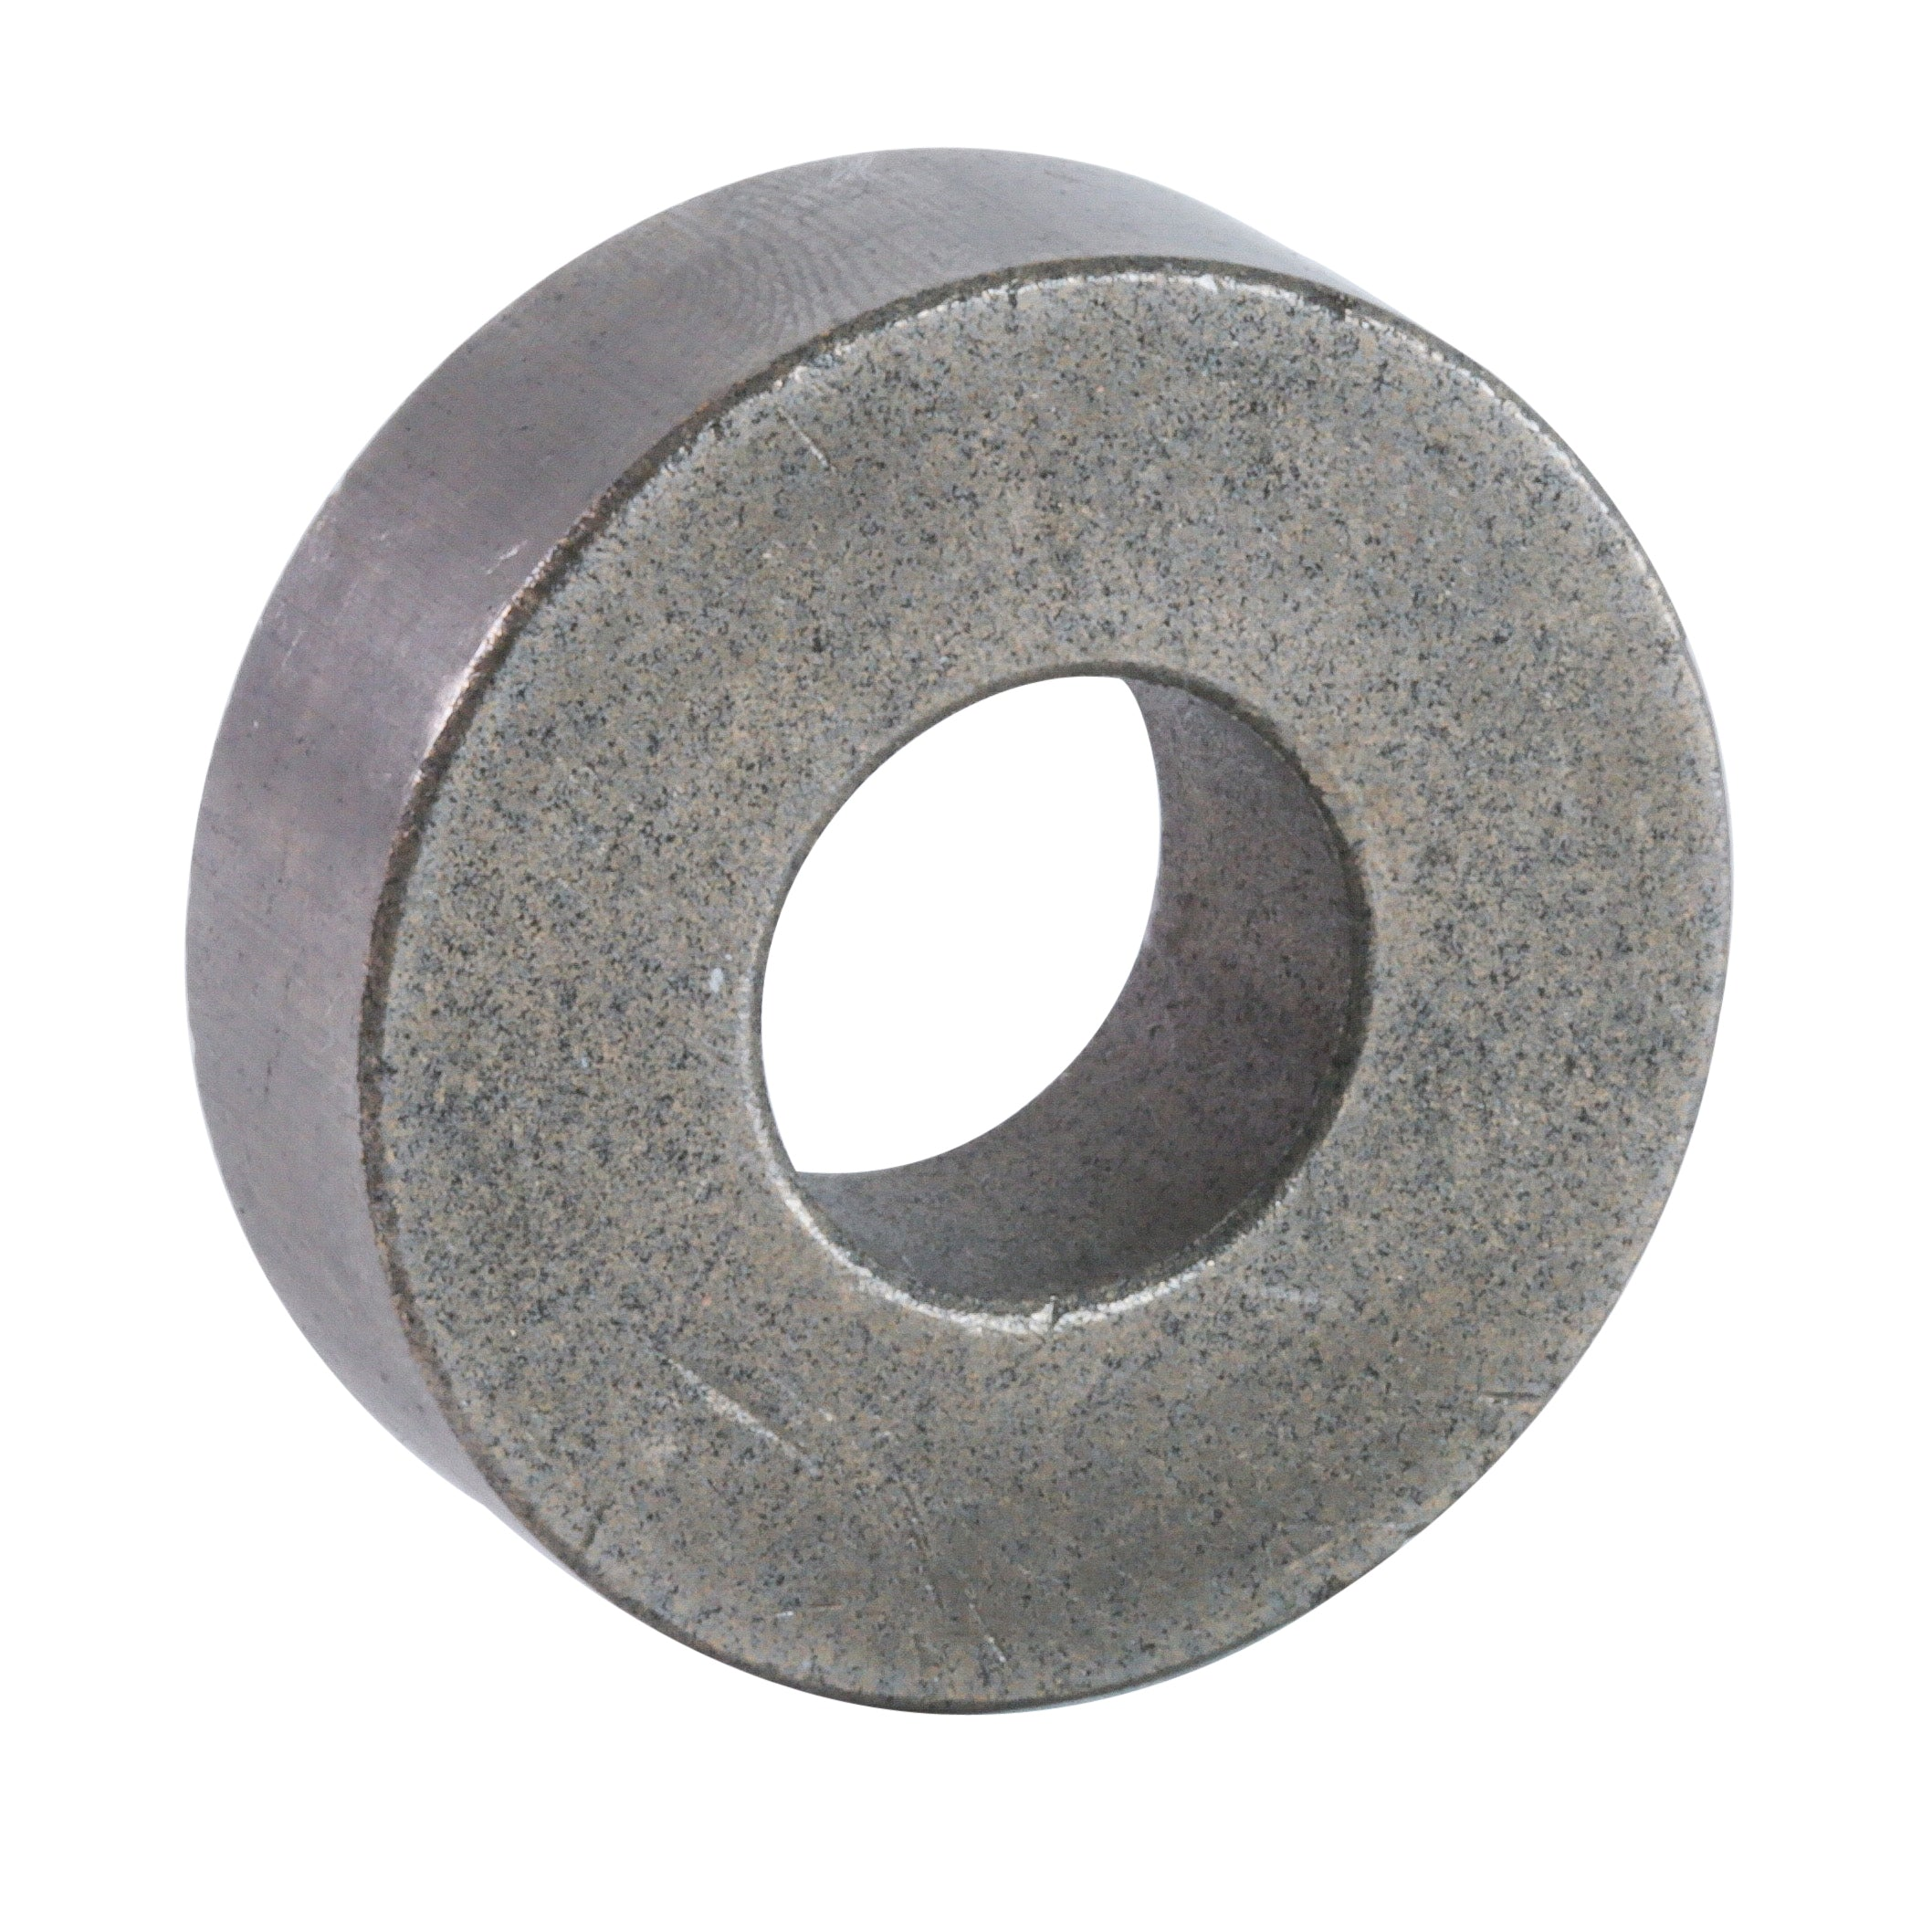 Clutch and Flywheel Pilot Bushing • 1932-60